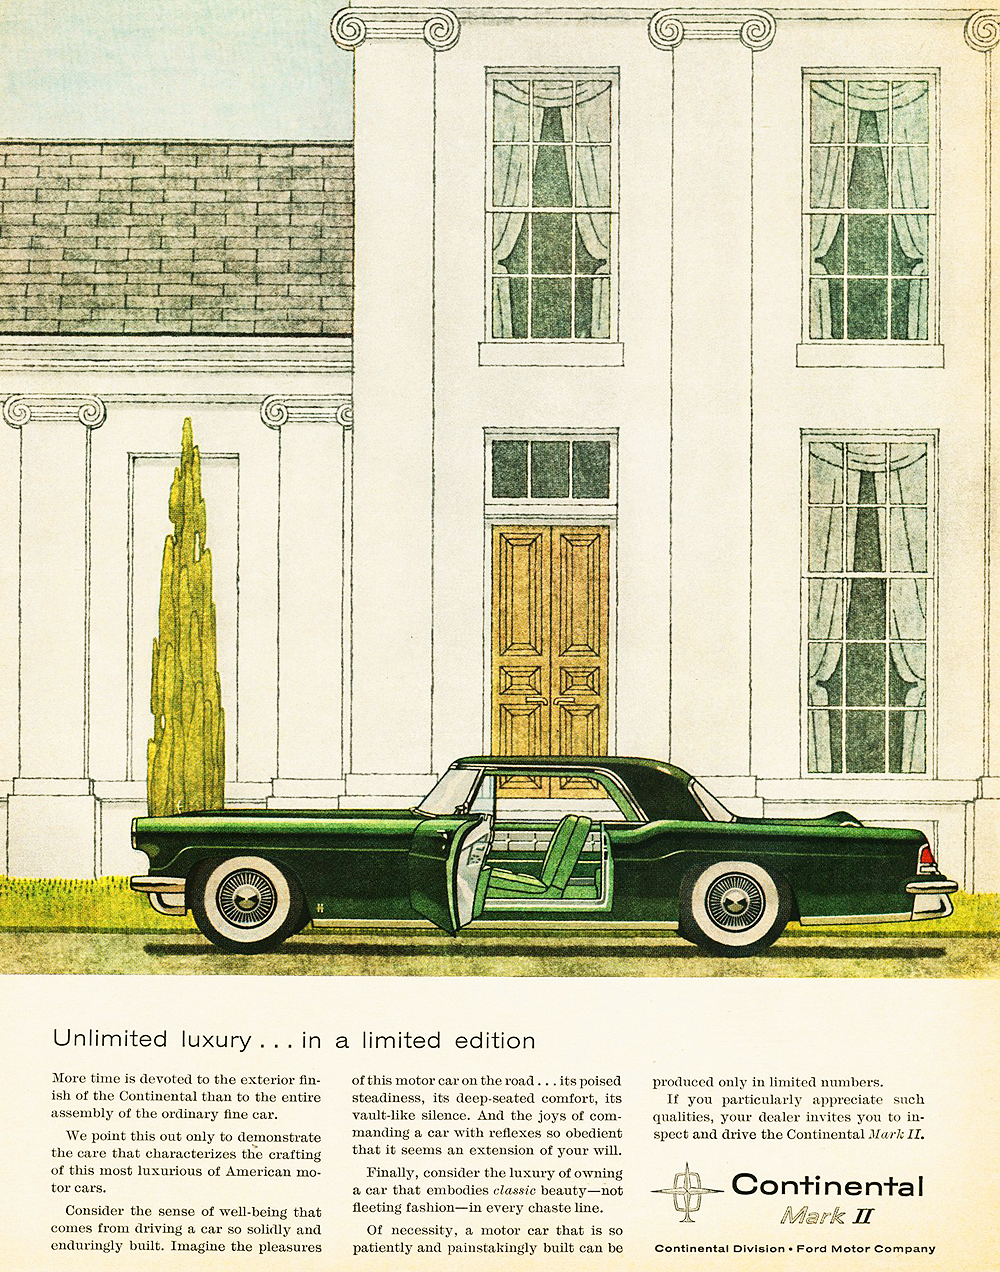 1956 Lincoln Continental Mark II ad | CLASSIC CARS TODAY ONLINE